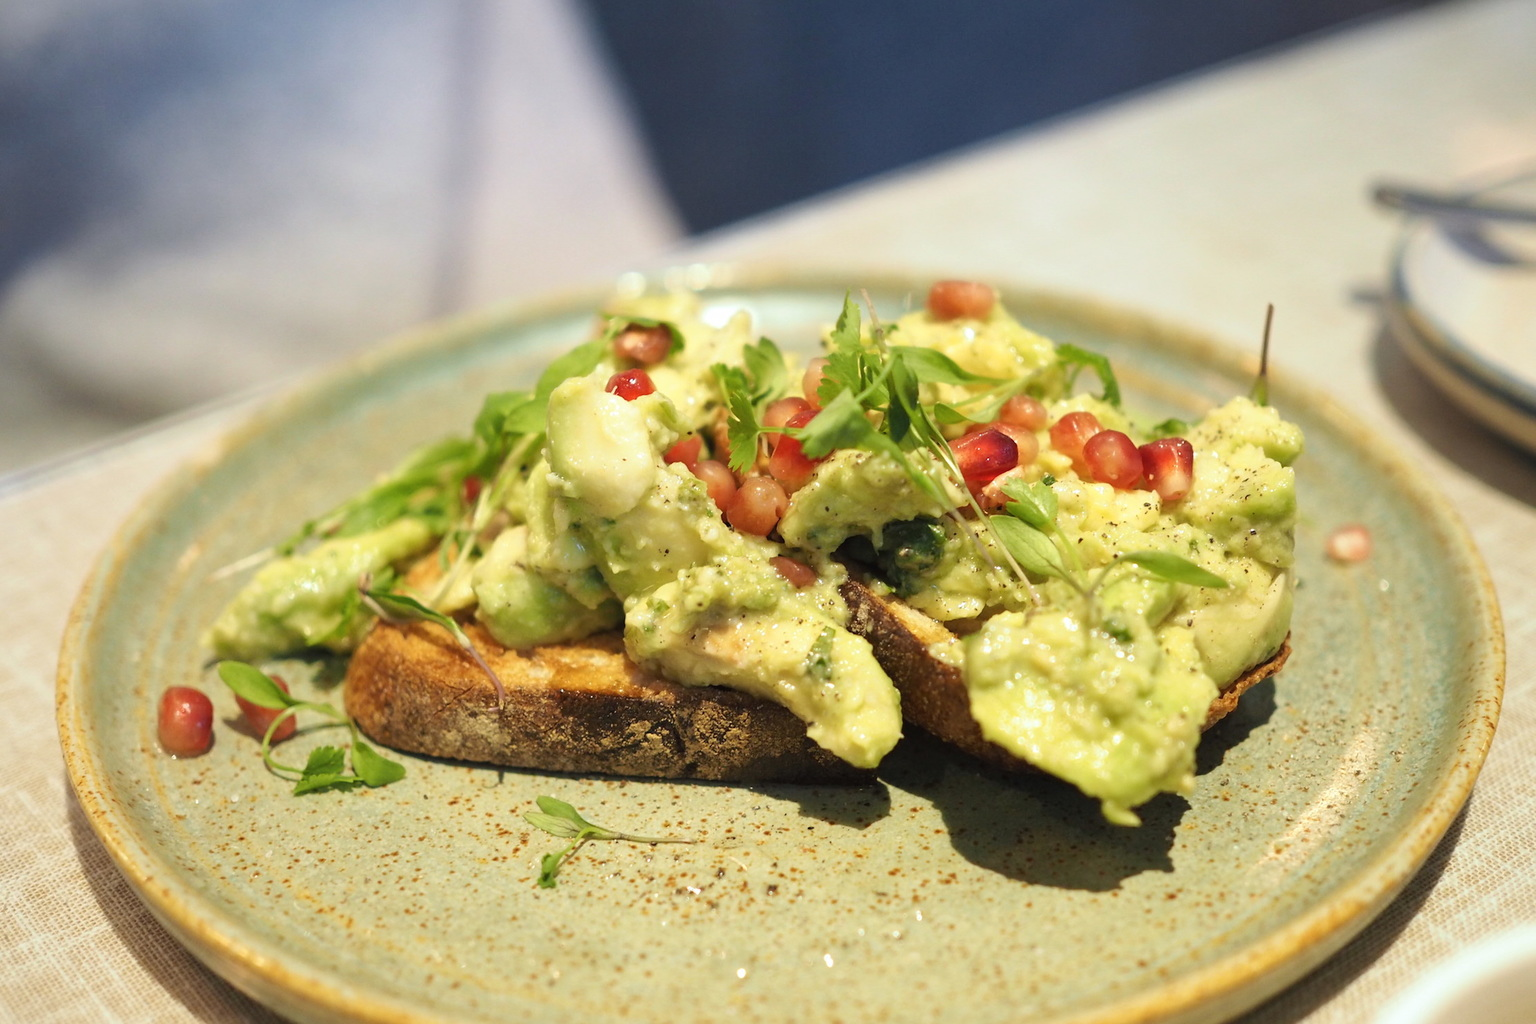 STYLELOBSTER BRUNCHES AT FARM GIRL CAFE, NOTTING HILL